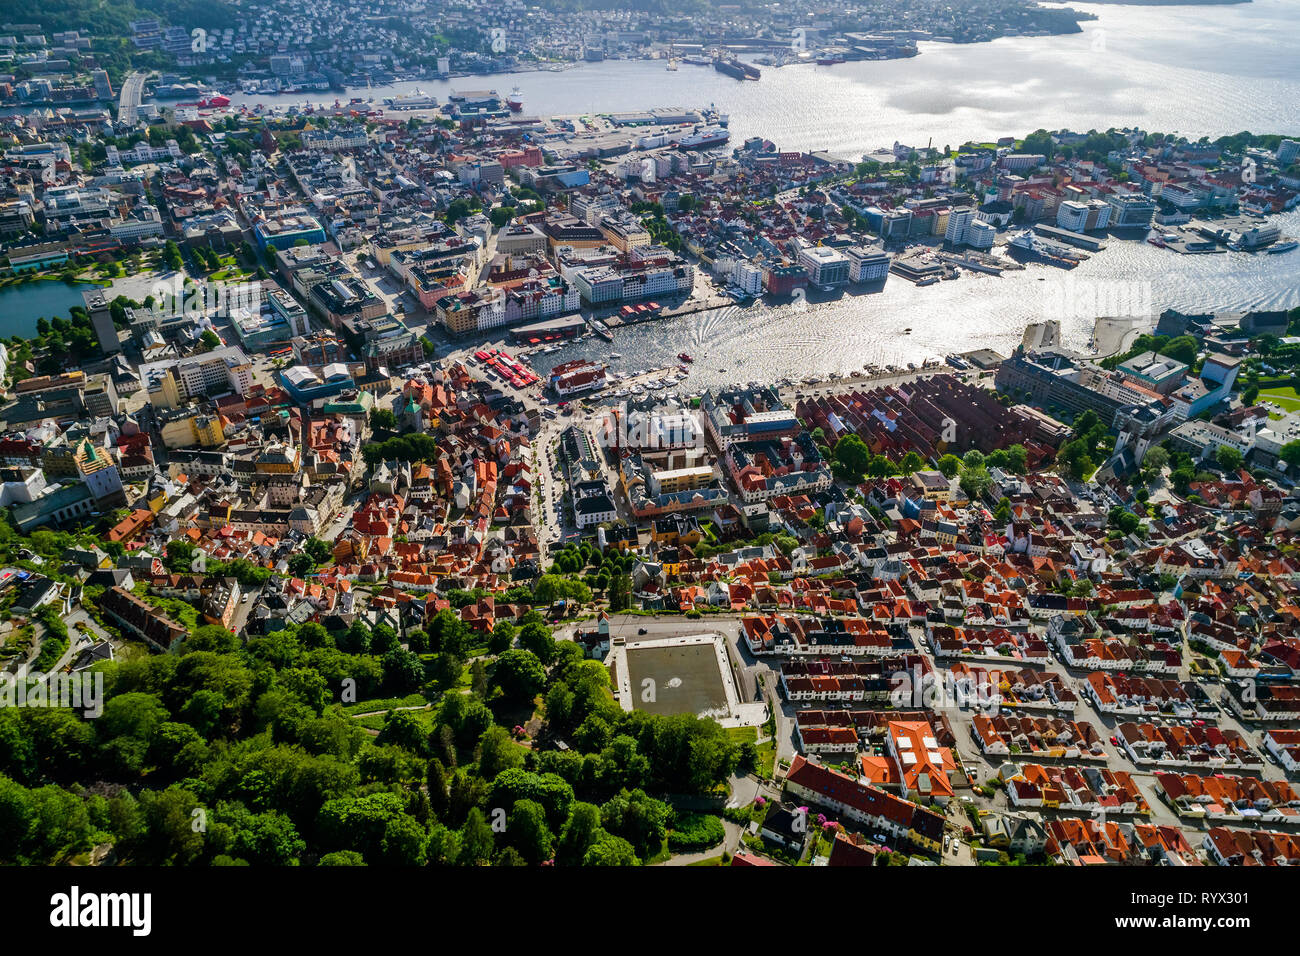 Bergen is a city and municipality in Hordaland on the west coast of Norway. Bergen is the second-largest city in Norway. The view from the height of b - Stock Image